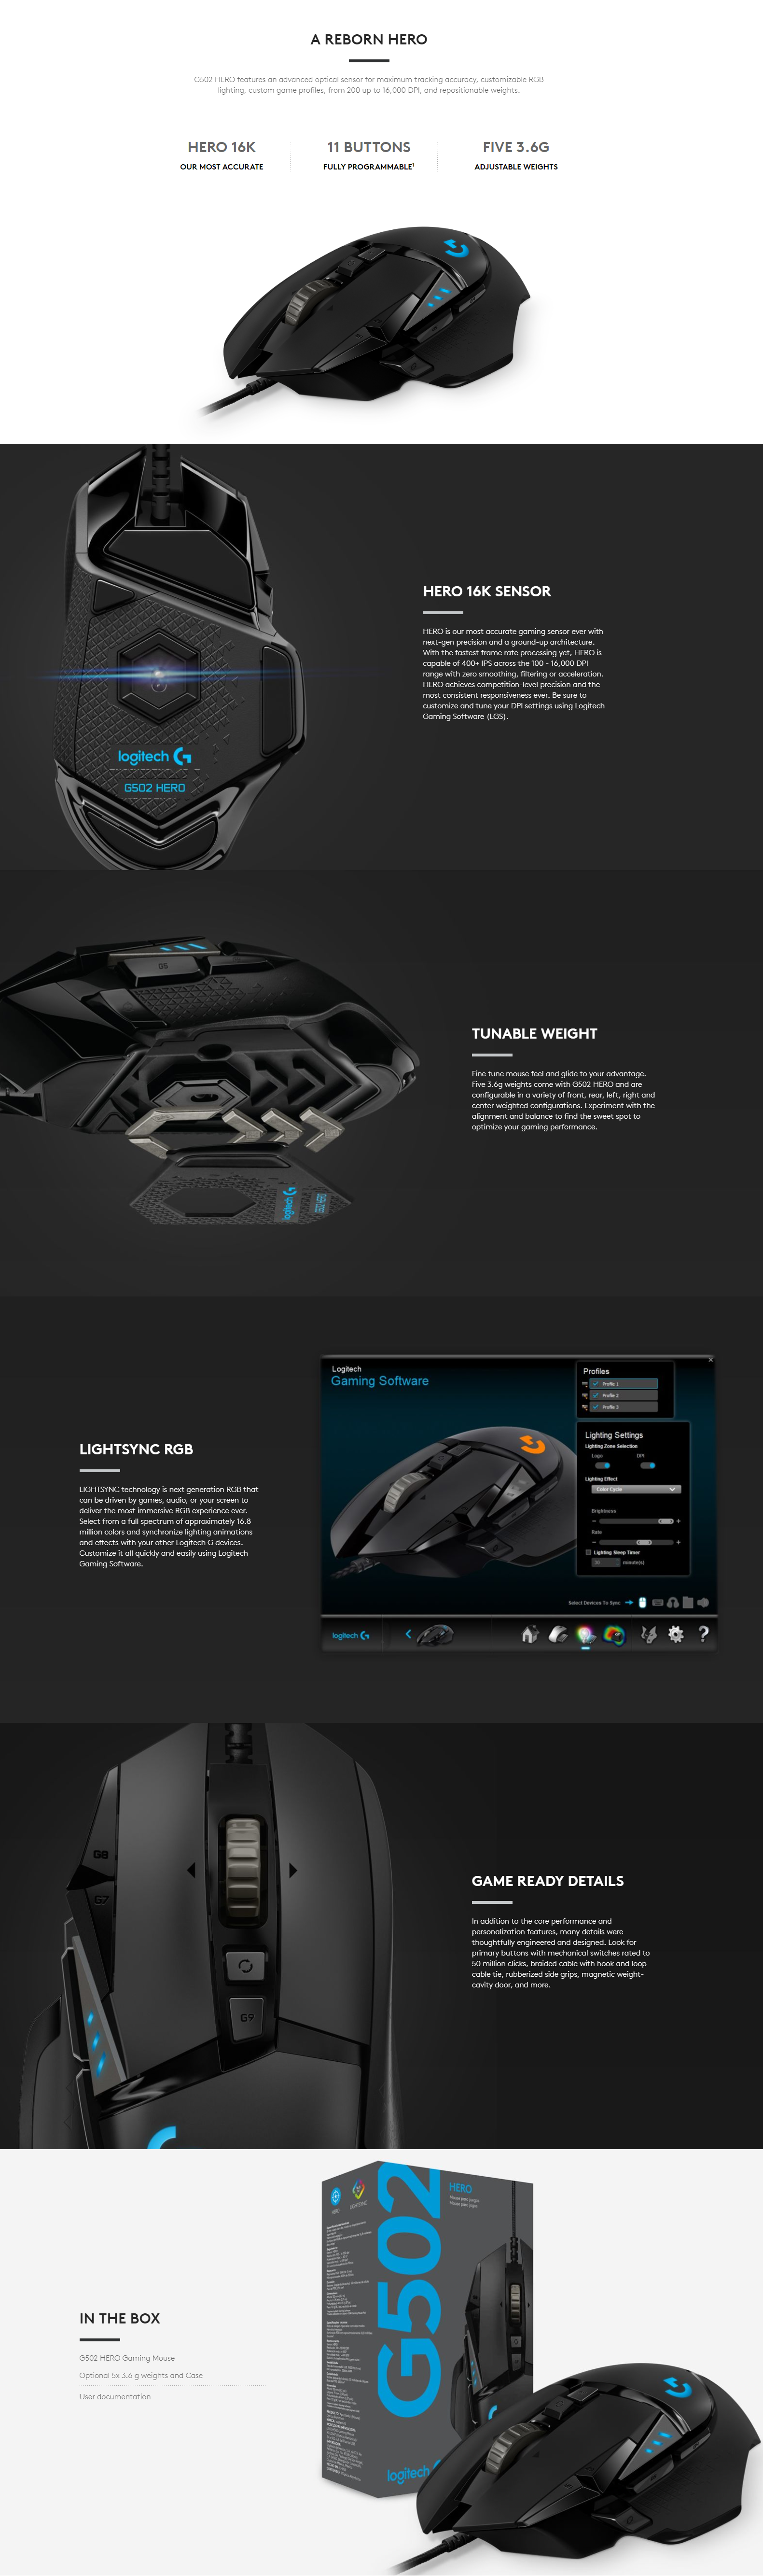 Logitech G502 Hero Mouse | AllBoard tk - HOT Popular Items